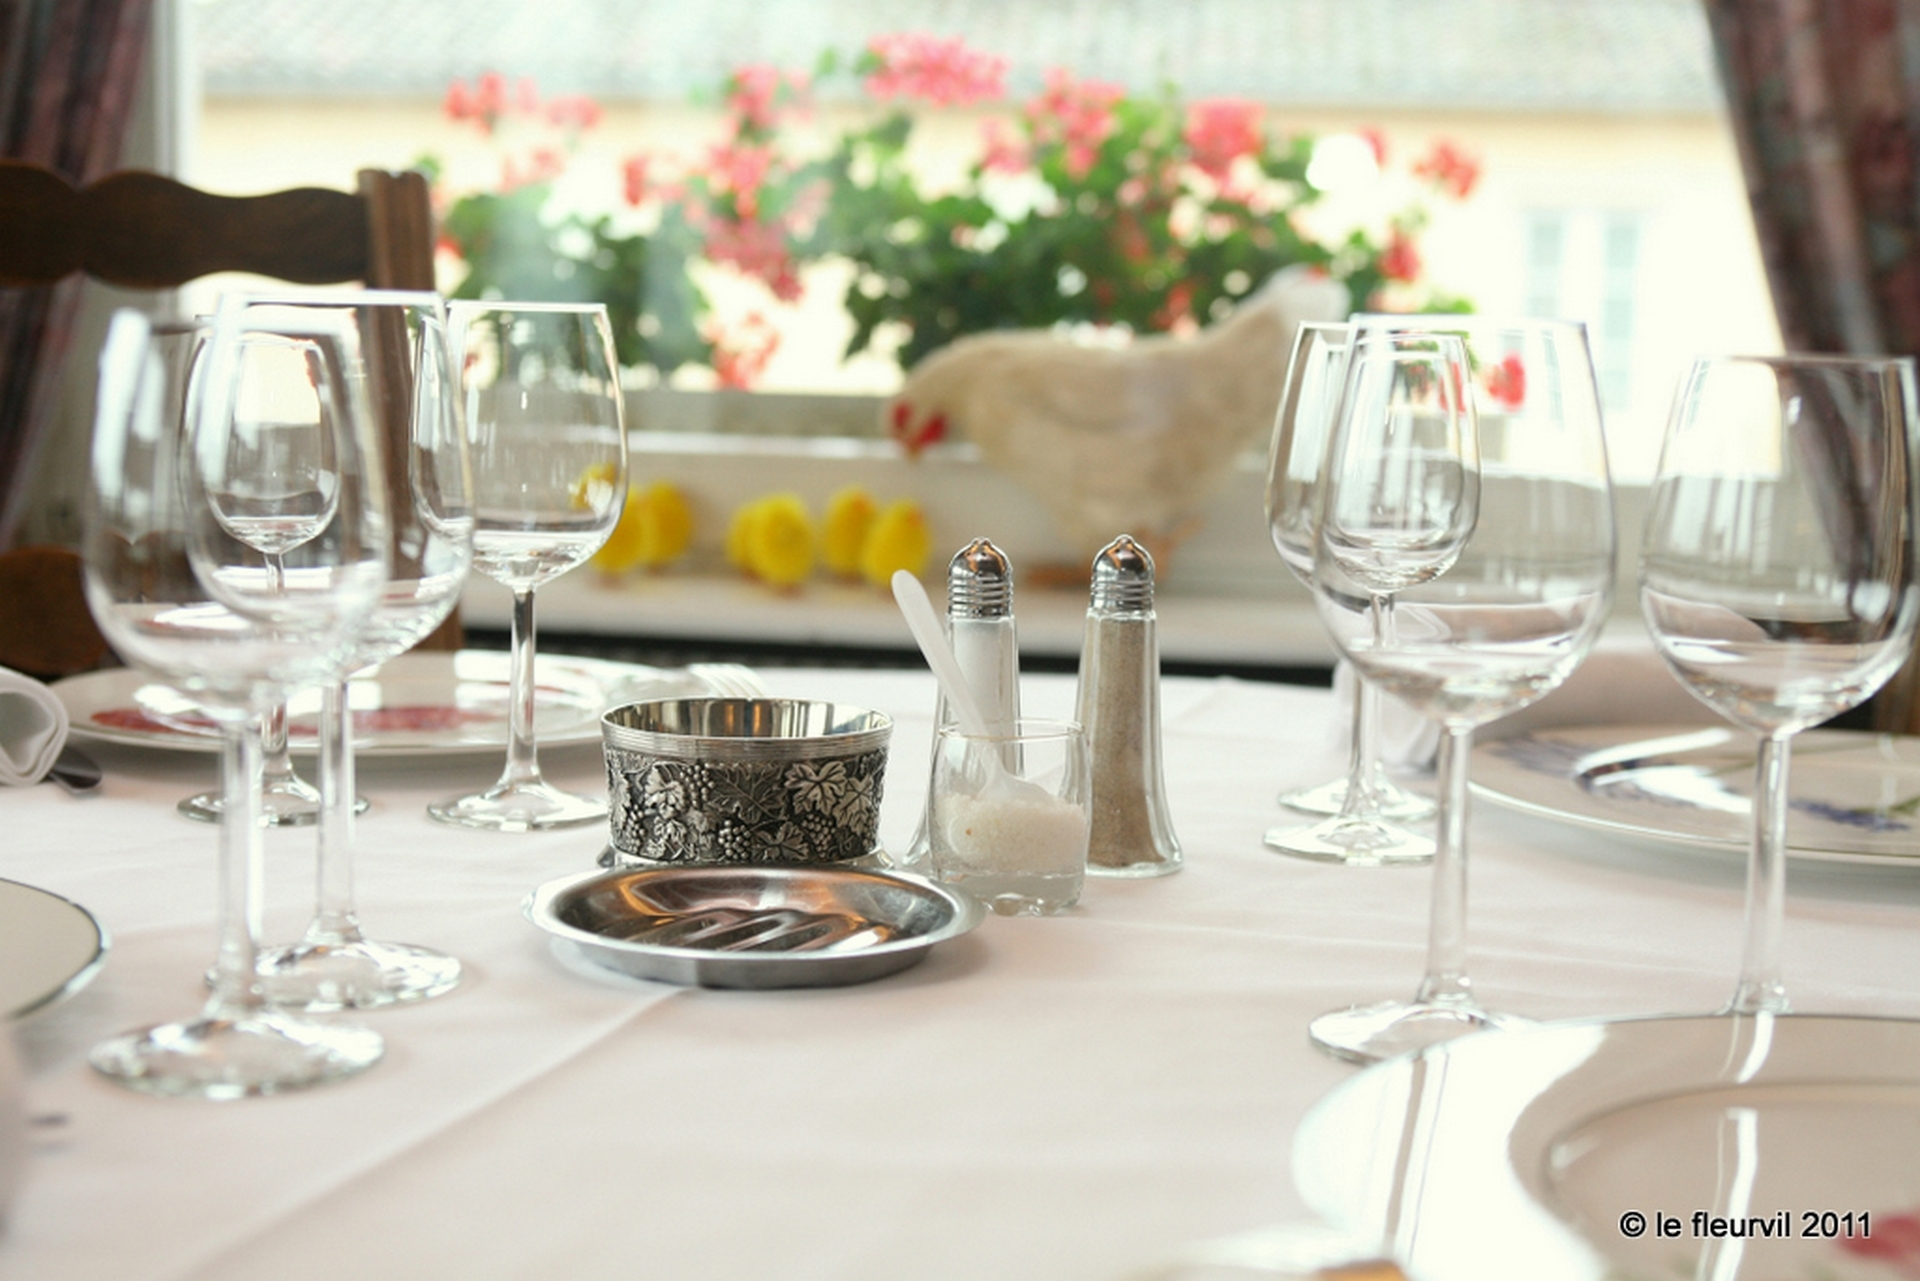 decoration_table_restaurant_71